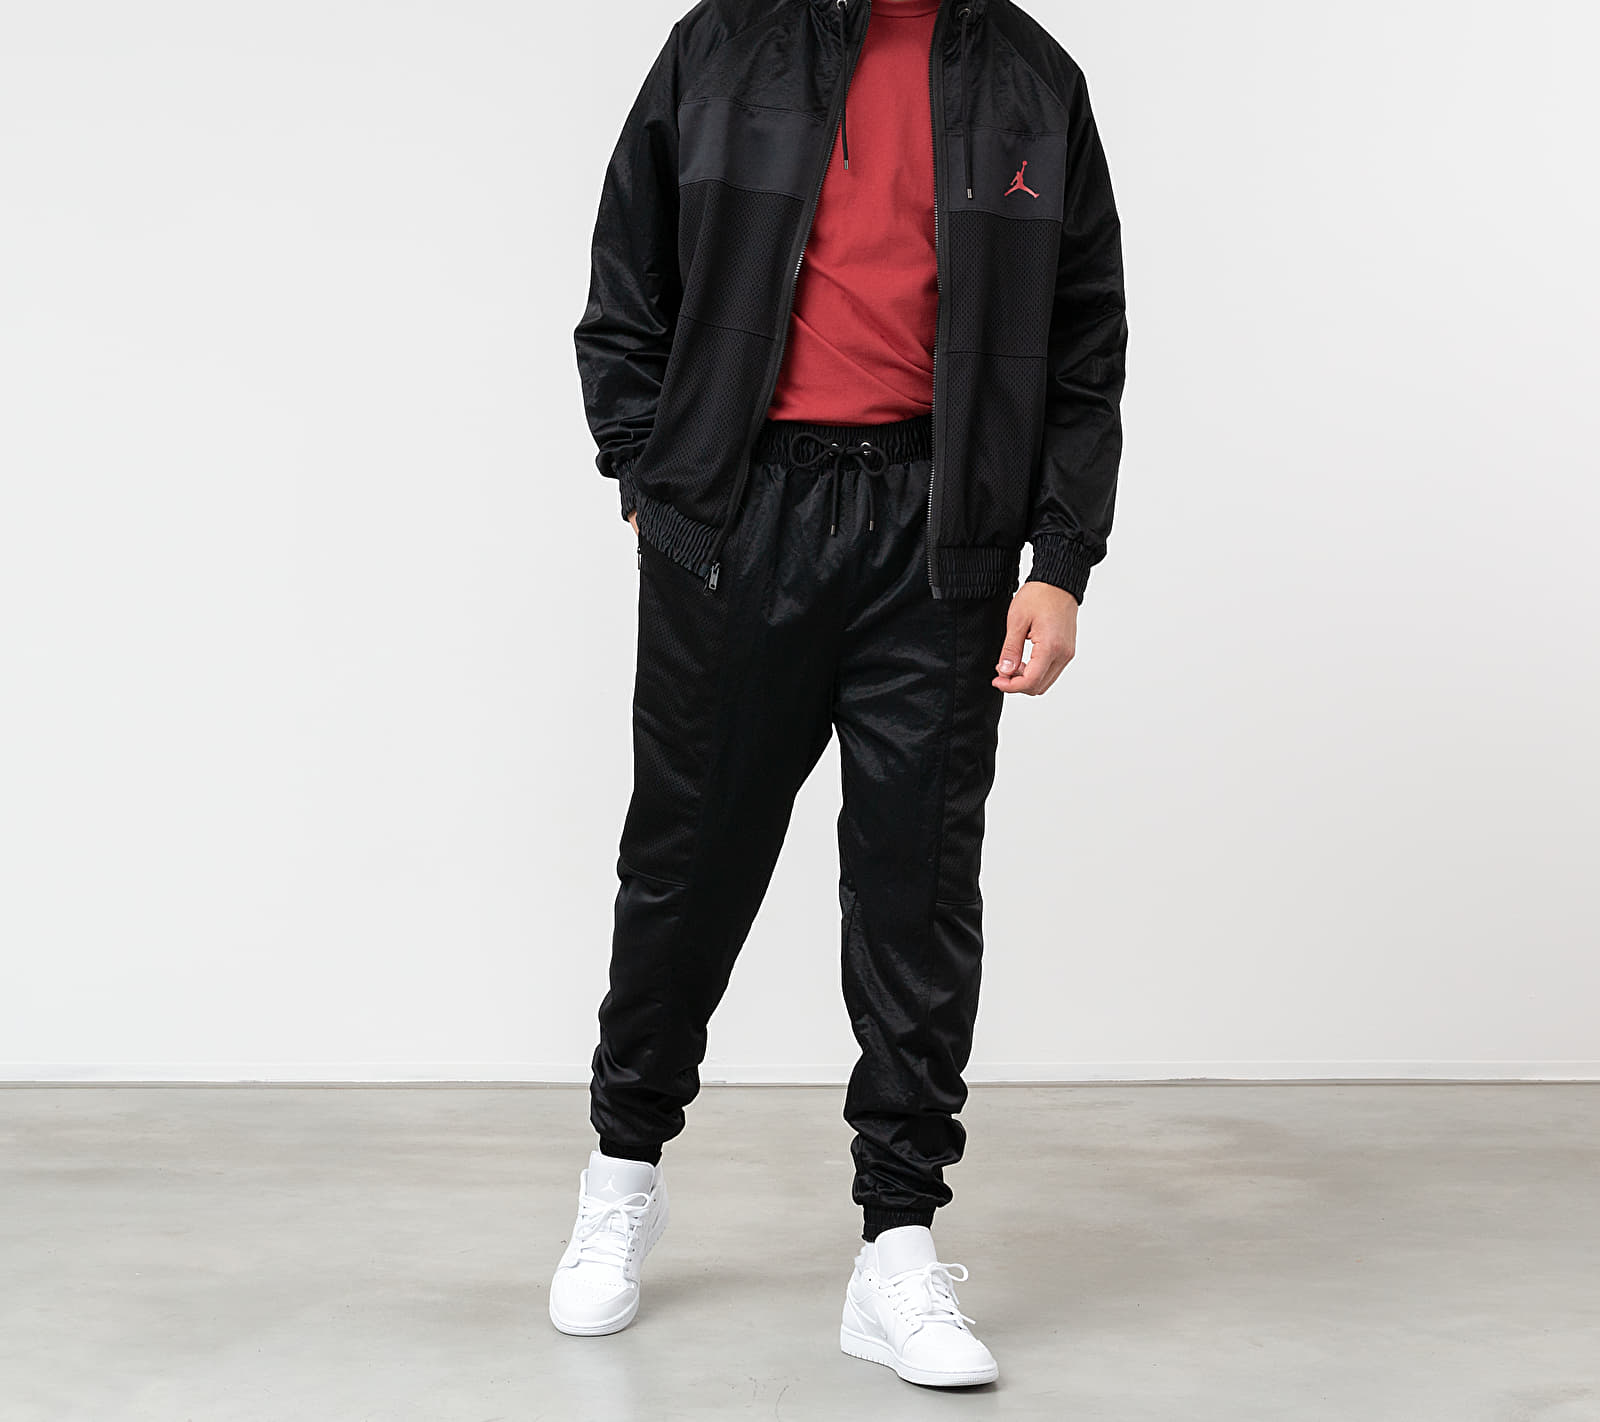 Jordan Wings Suit Jacket Black/ Black/ Black/ Gym Red